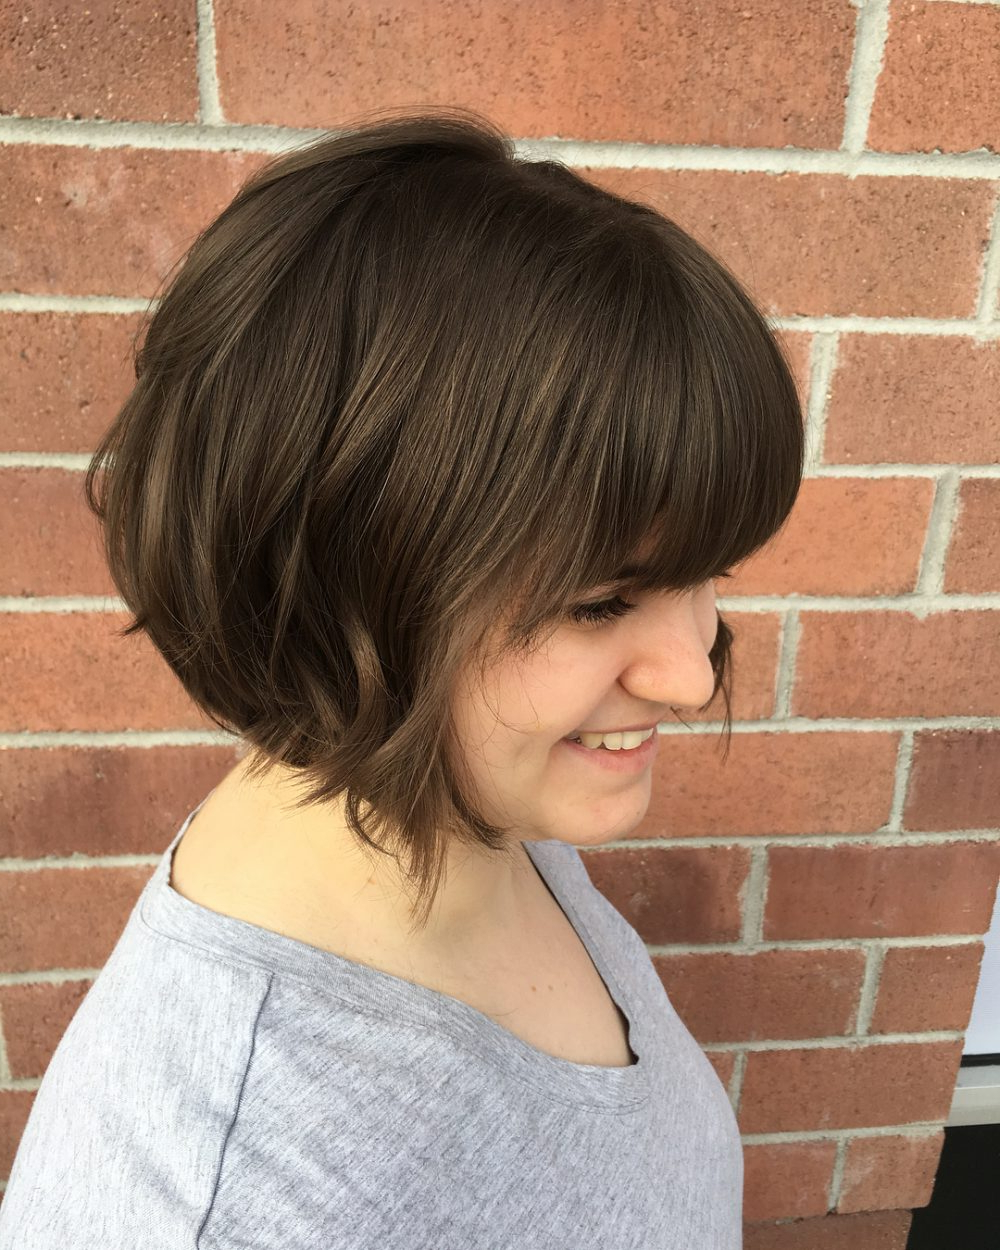 34 Greatest Short Haircuts And Hairstyles For Thick Hair For 2018 Intended For Short Hairstyles For Thick Hair And Long Face (View 5 of 25)